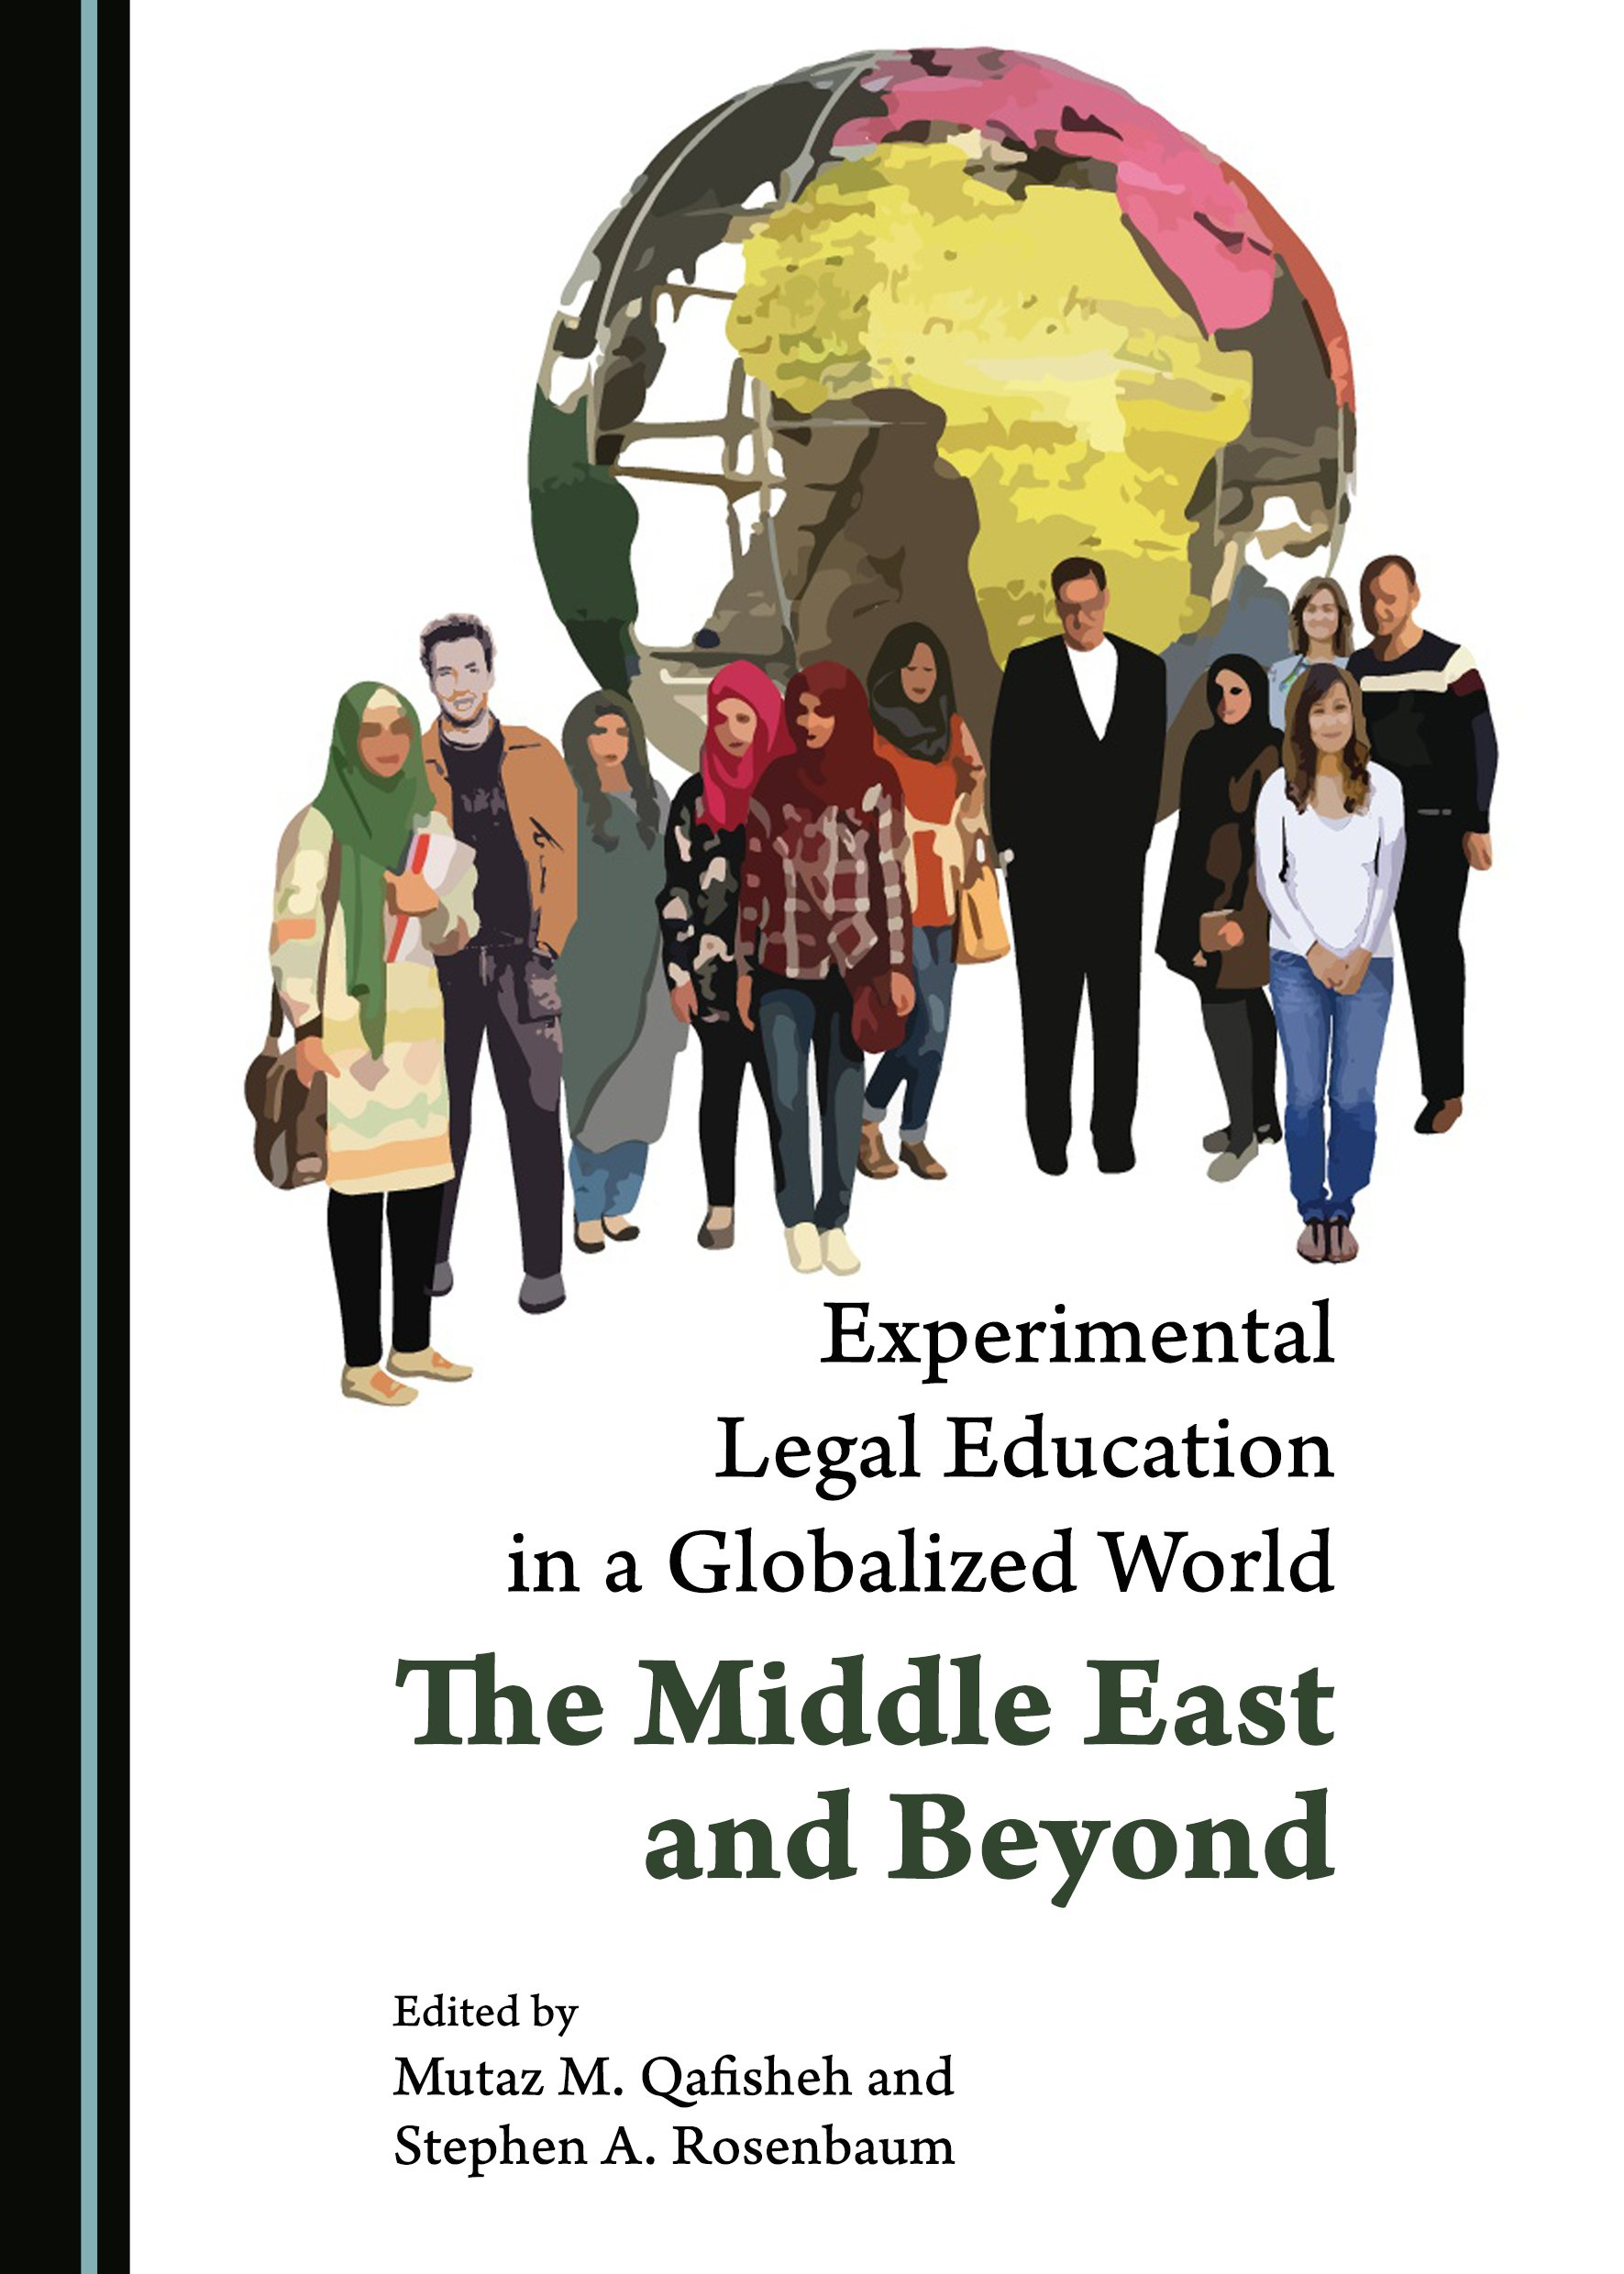 Experimental Legal Education in a Globalized World: The Middle East and Beyond